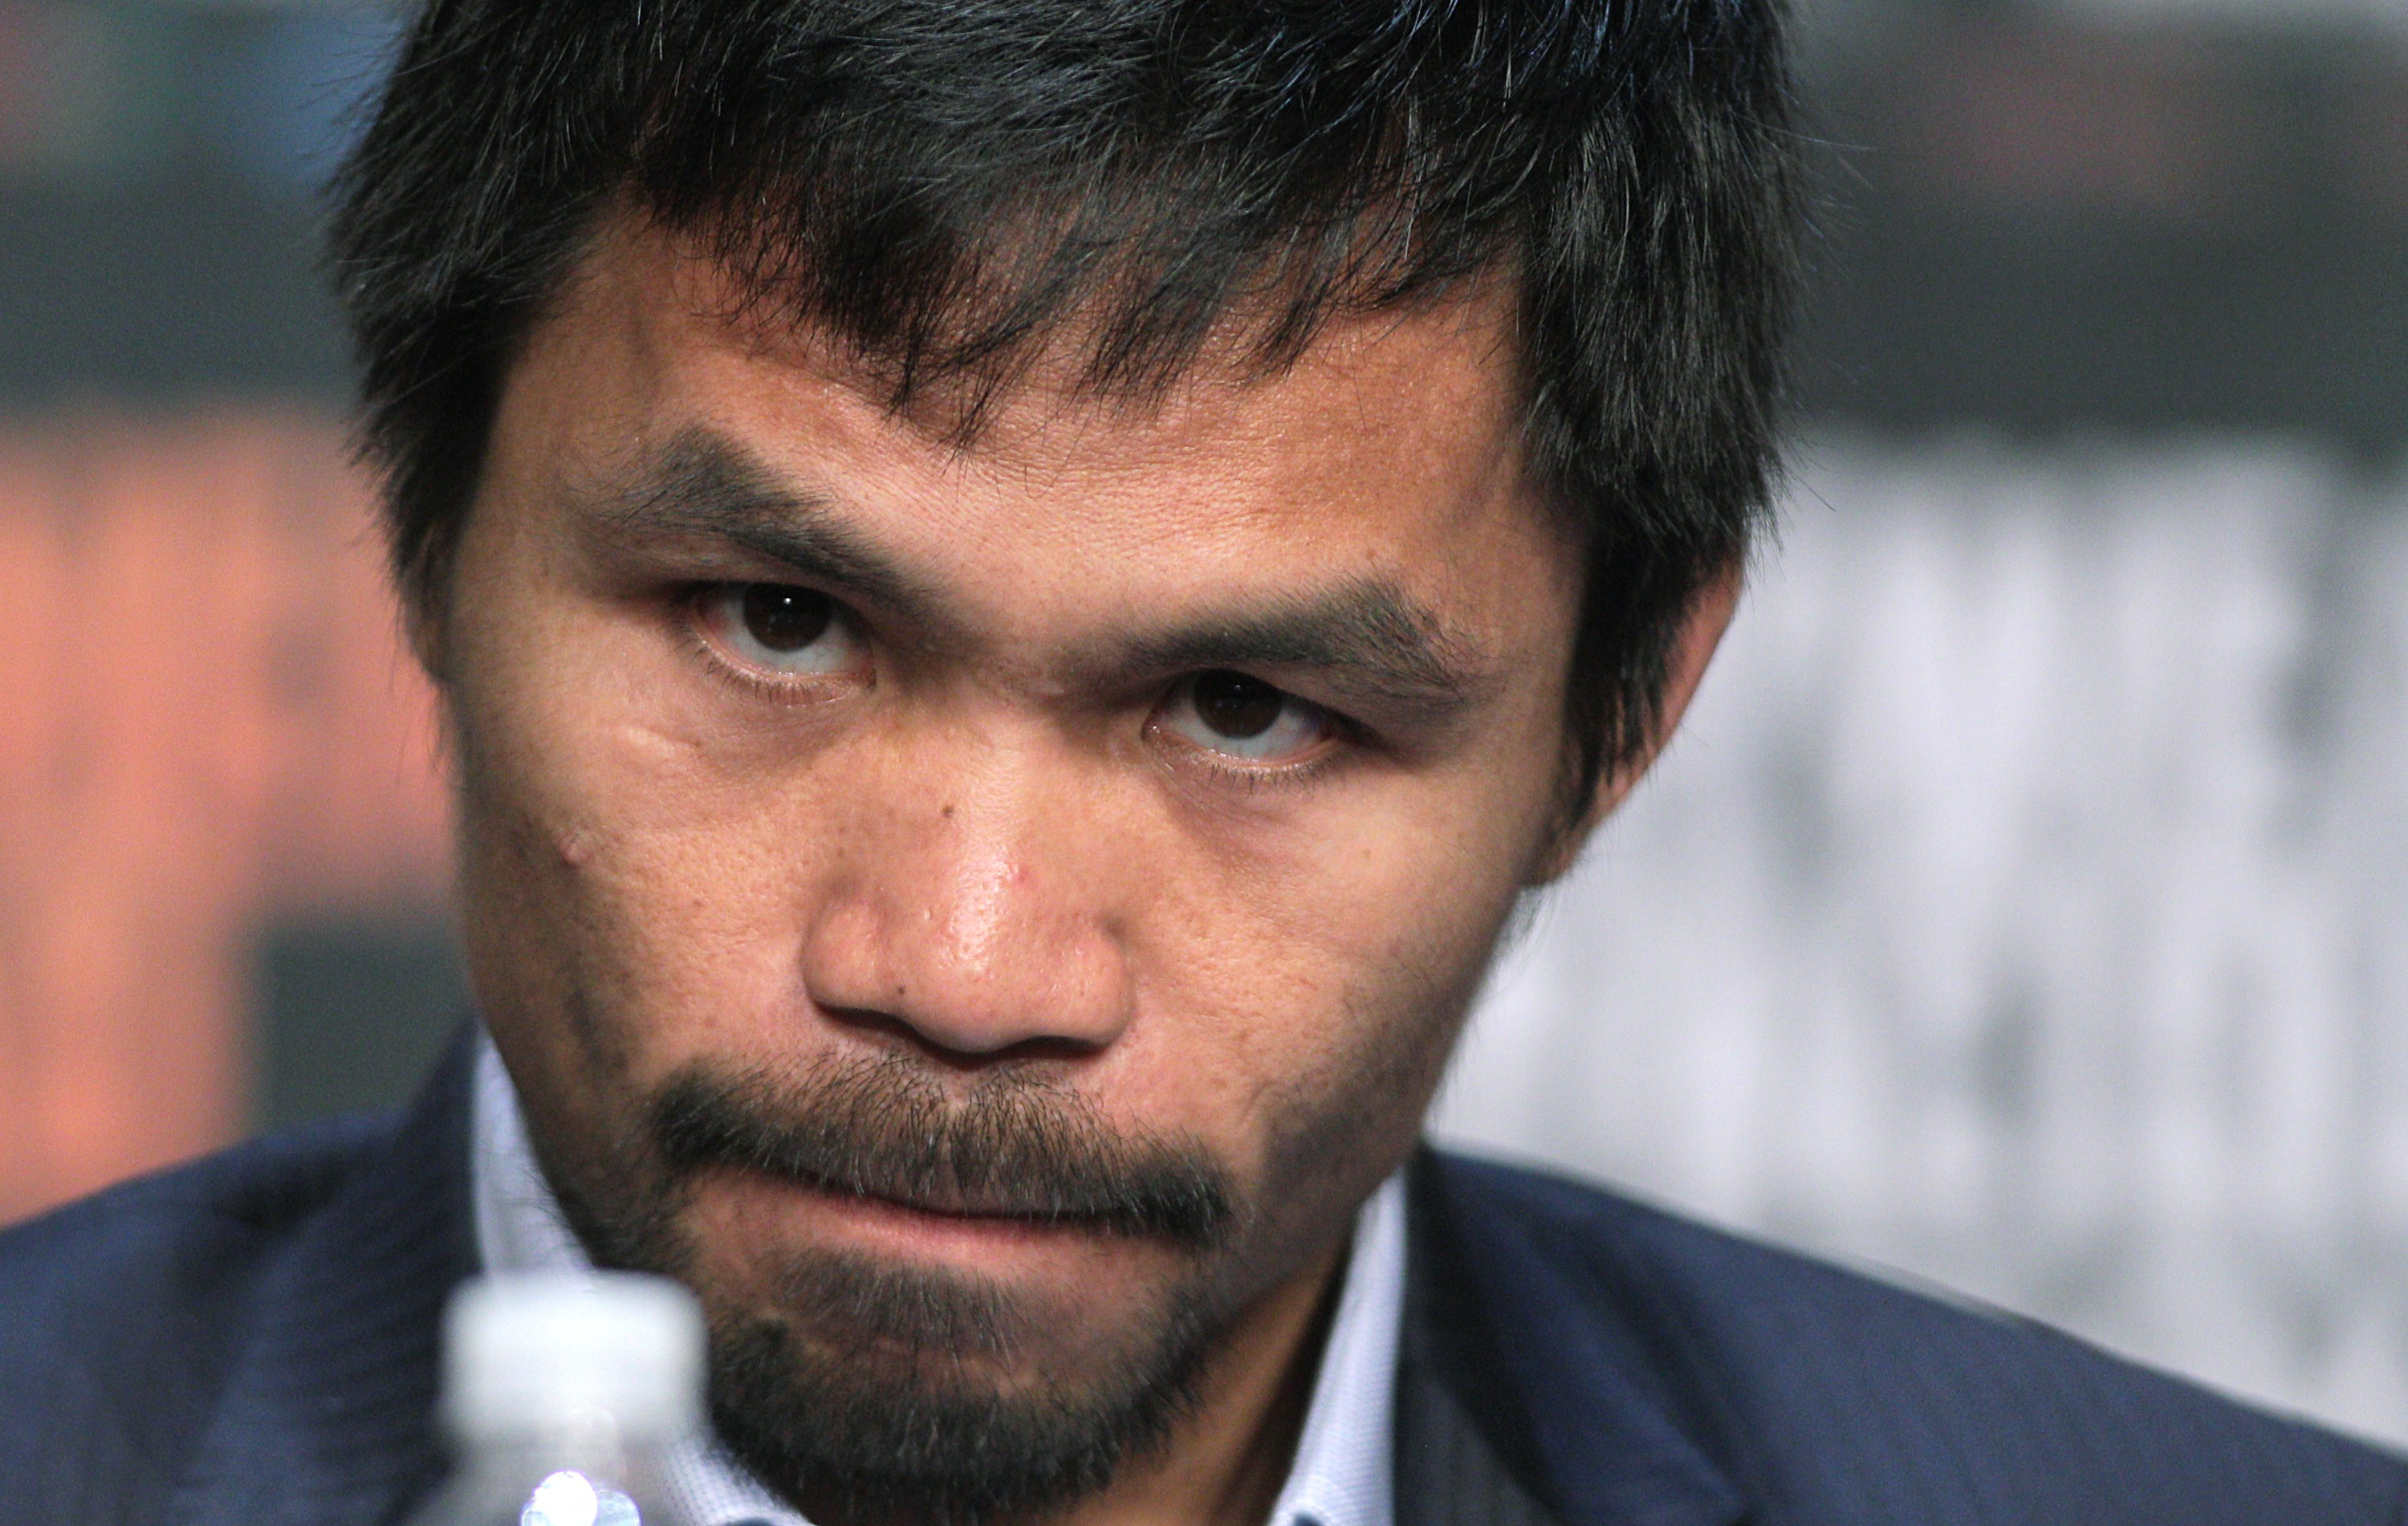 WBO welterweight champion Manny Pacquiao listens during a news conference at the KA Theatre at MGM Grand Hotel & Casino in Las Vegas, April 29, 2015.